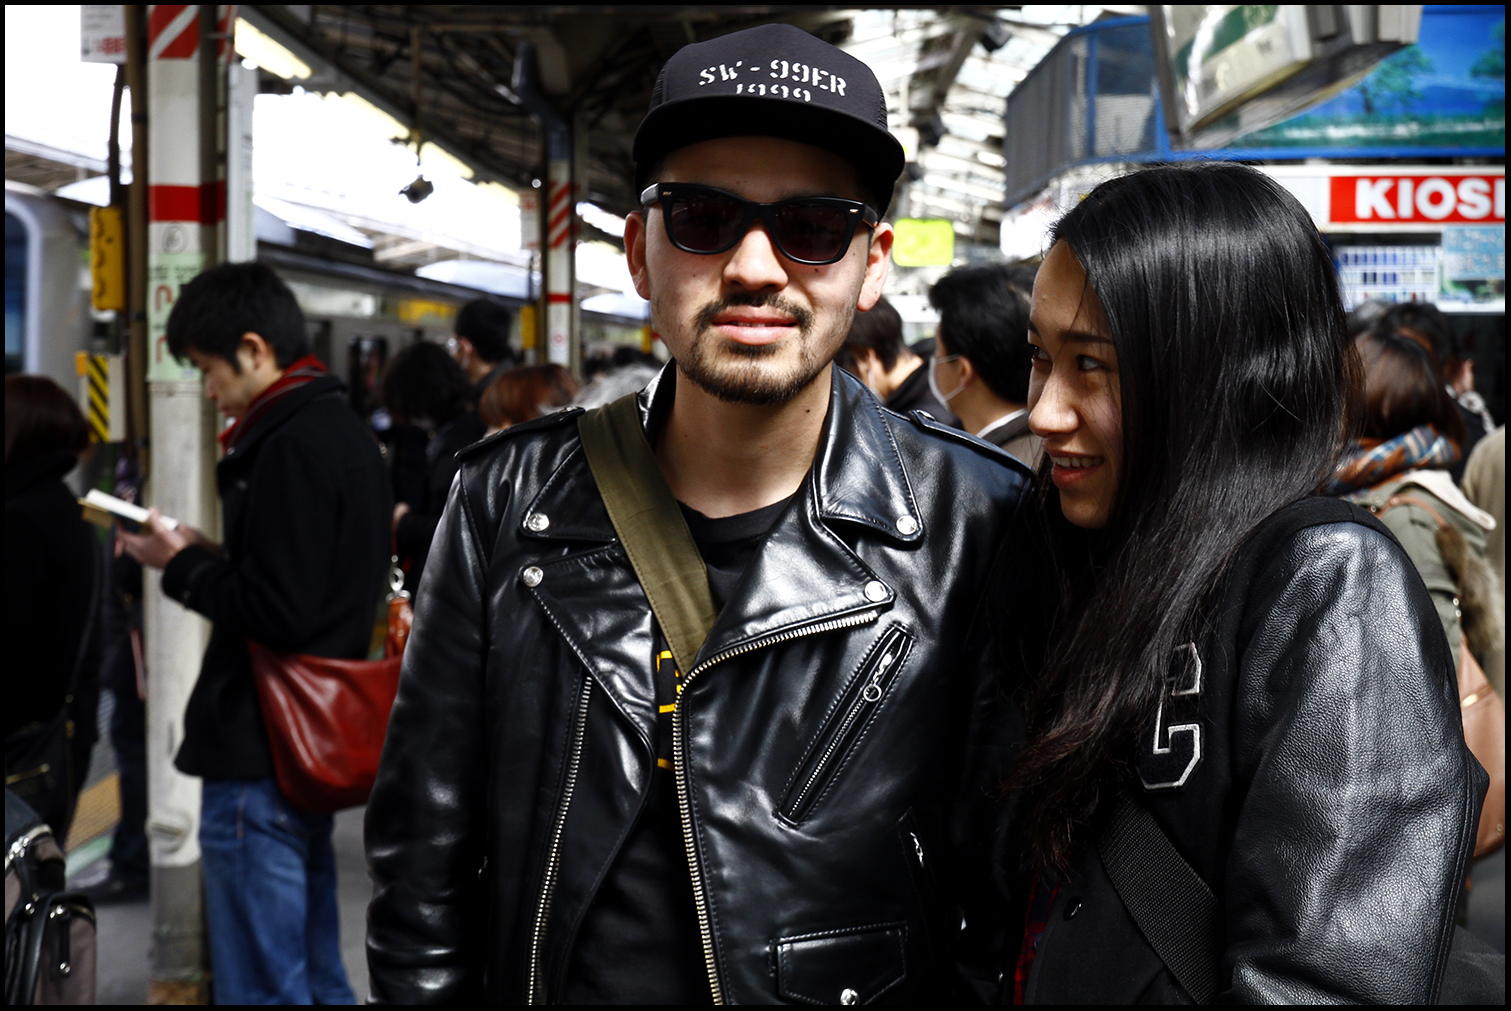 Tuukka13 - Japanese People on the Streets of Tokyo - 03.2012 - Street Life Style - 10